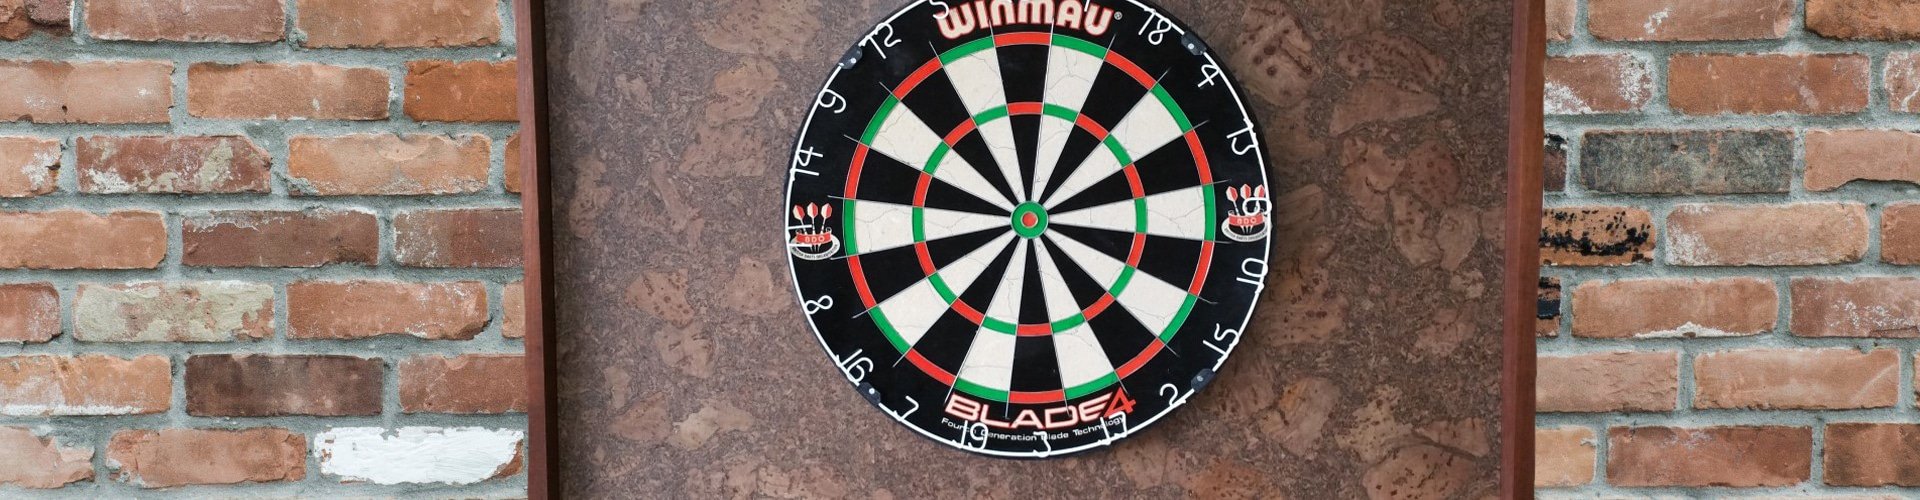 Best Backings for Dart Board Reviewed in Detail